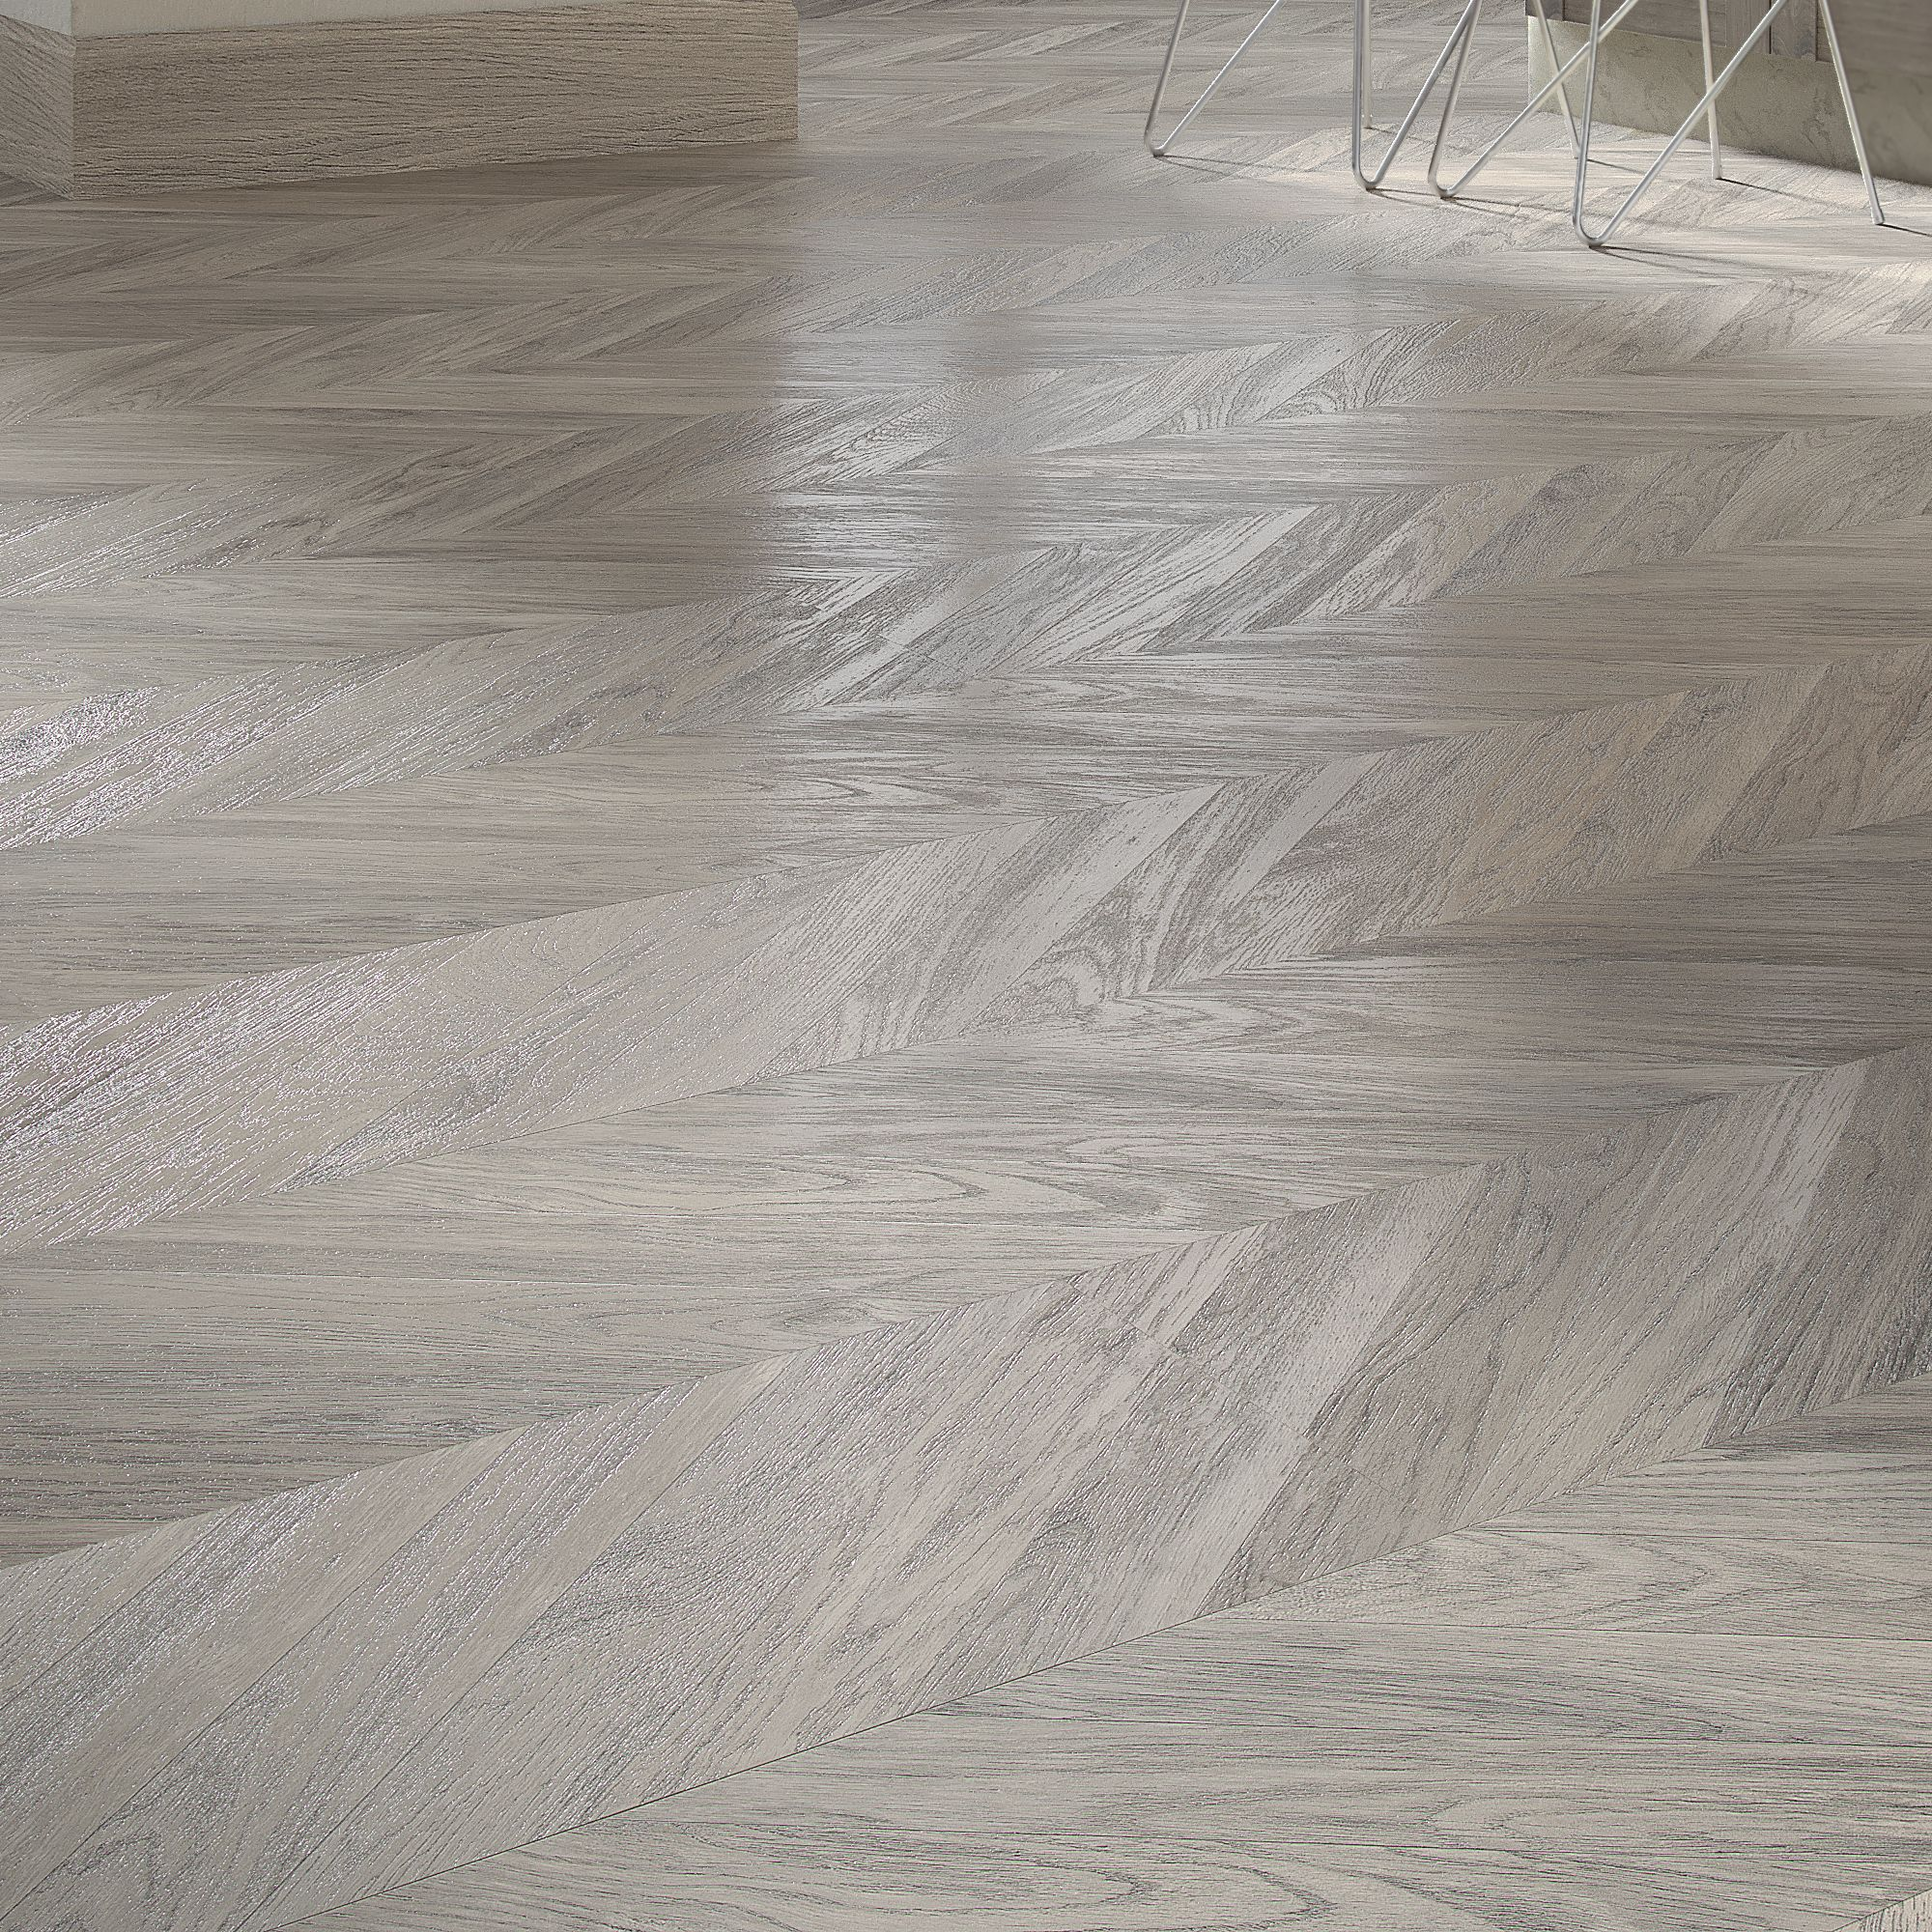 B Amp Q Alessano Grey Oak Effect Laminate Flooring 1 39m 178